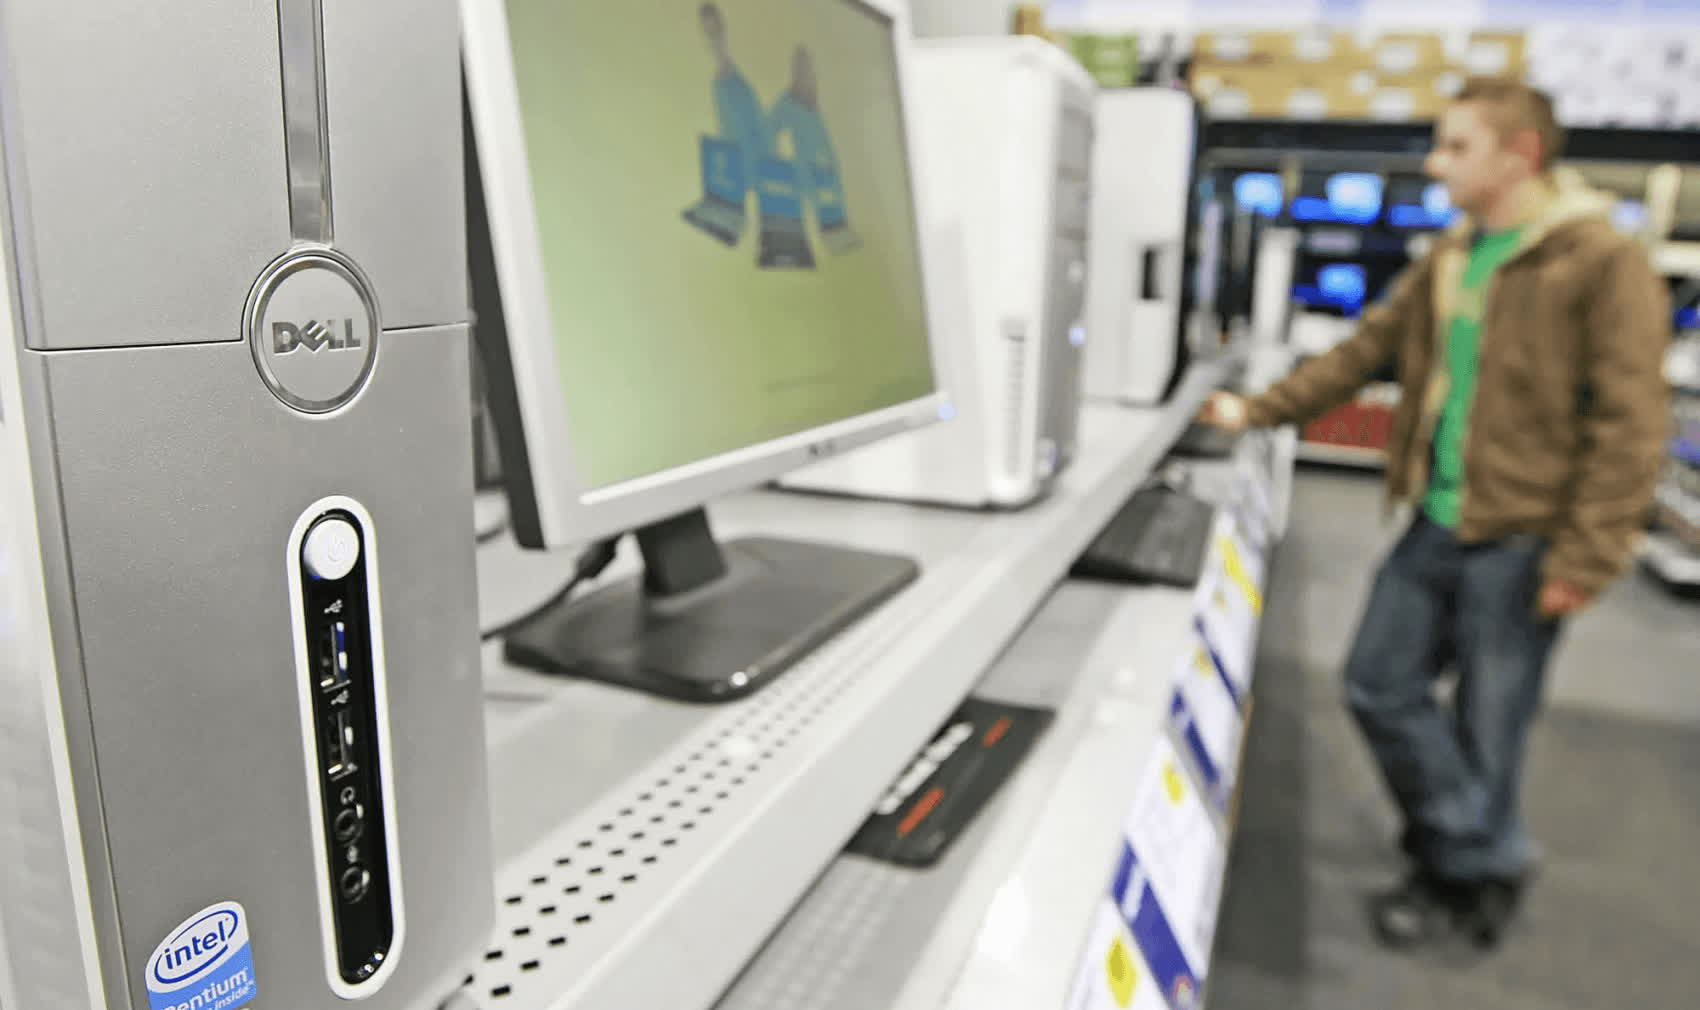 PC shipments continued to grow in Q2 2021, but signs suggest demand is dropping